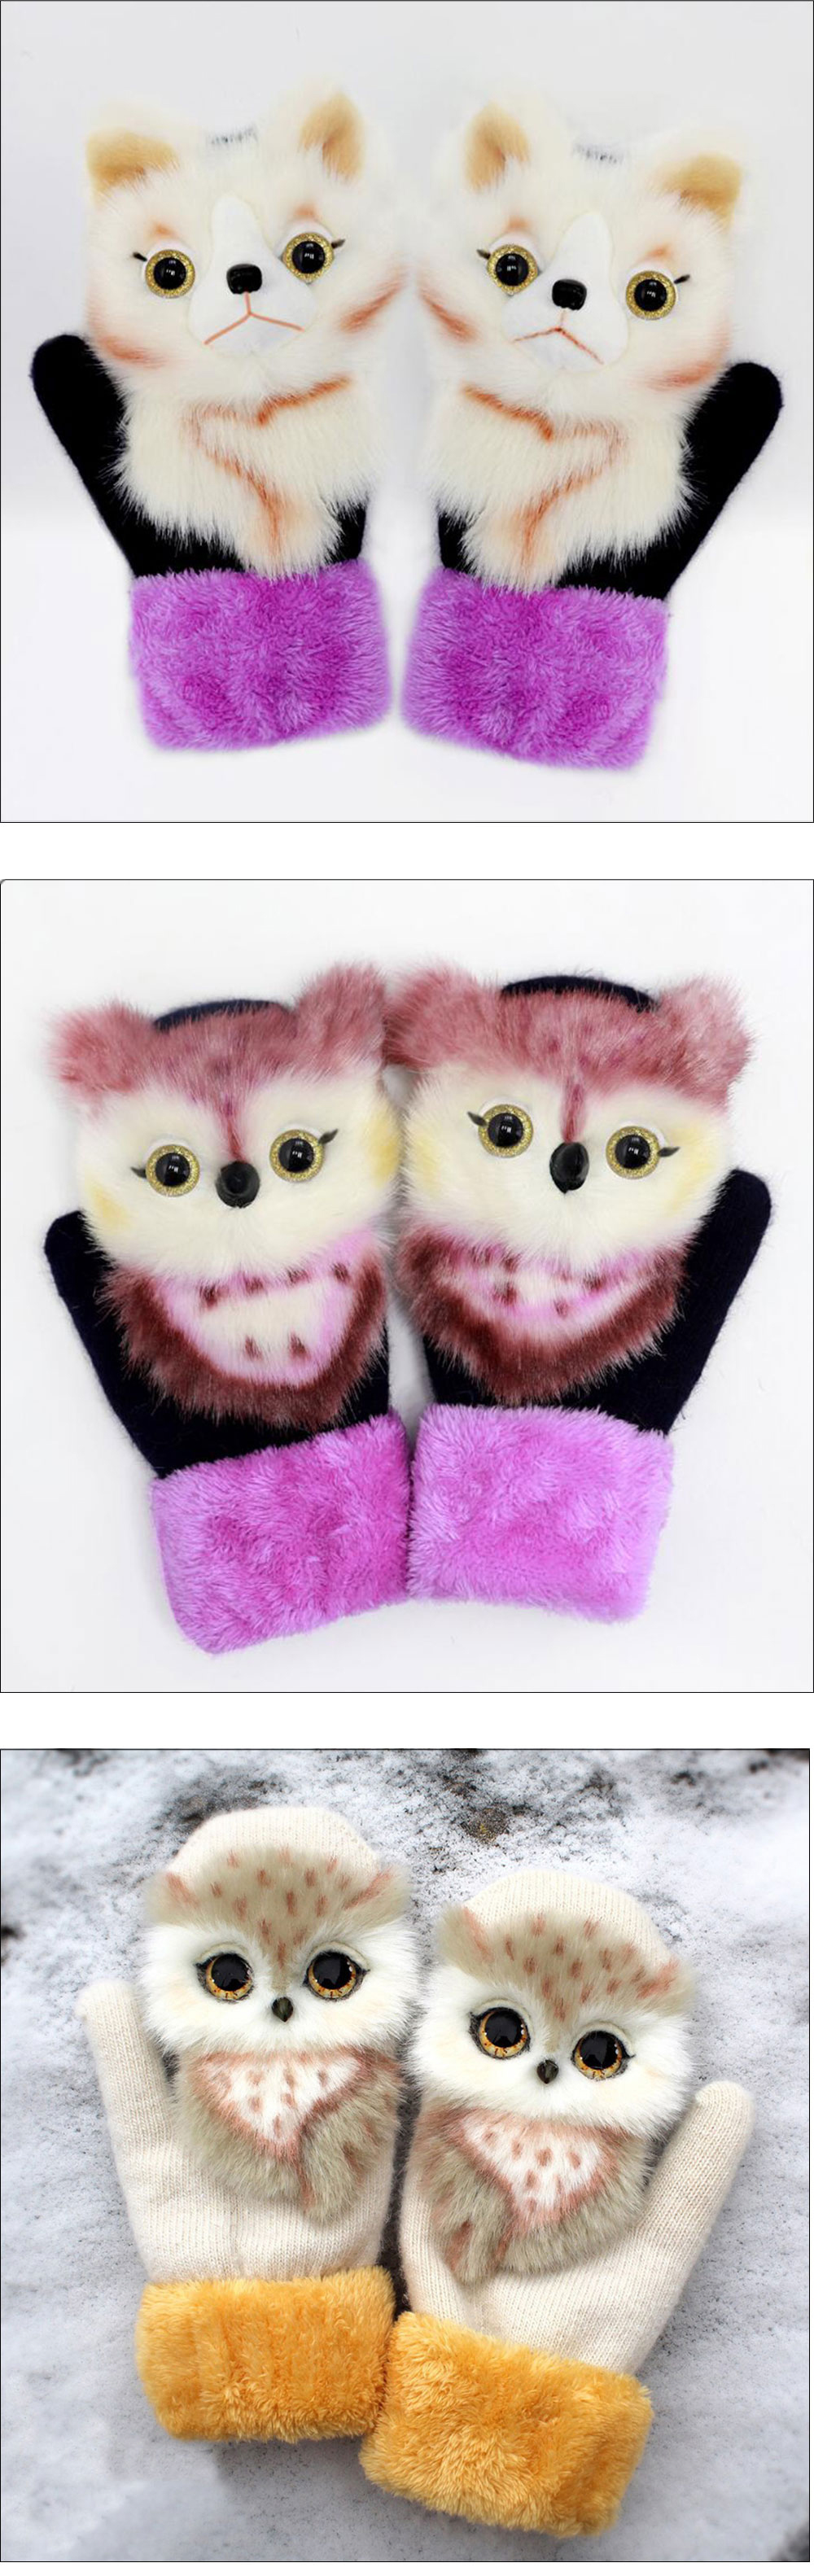 2021 New Cartoon Plush Knitted Gloves